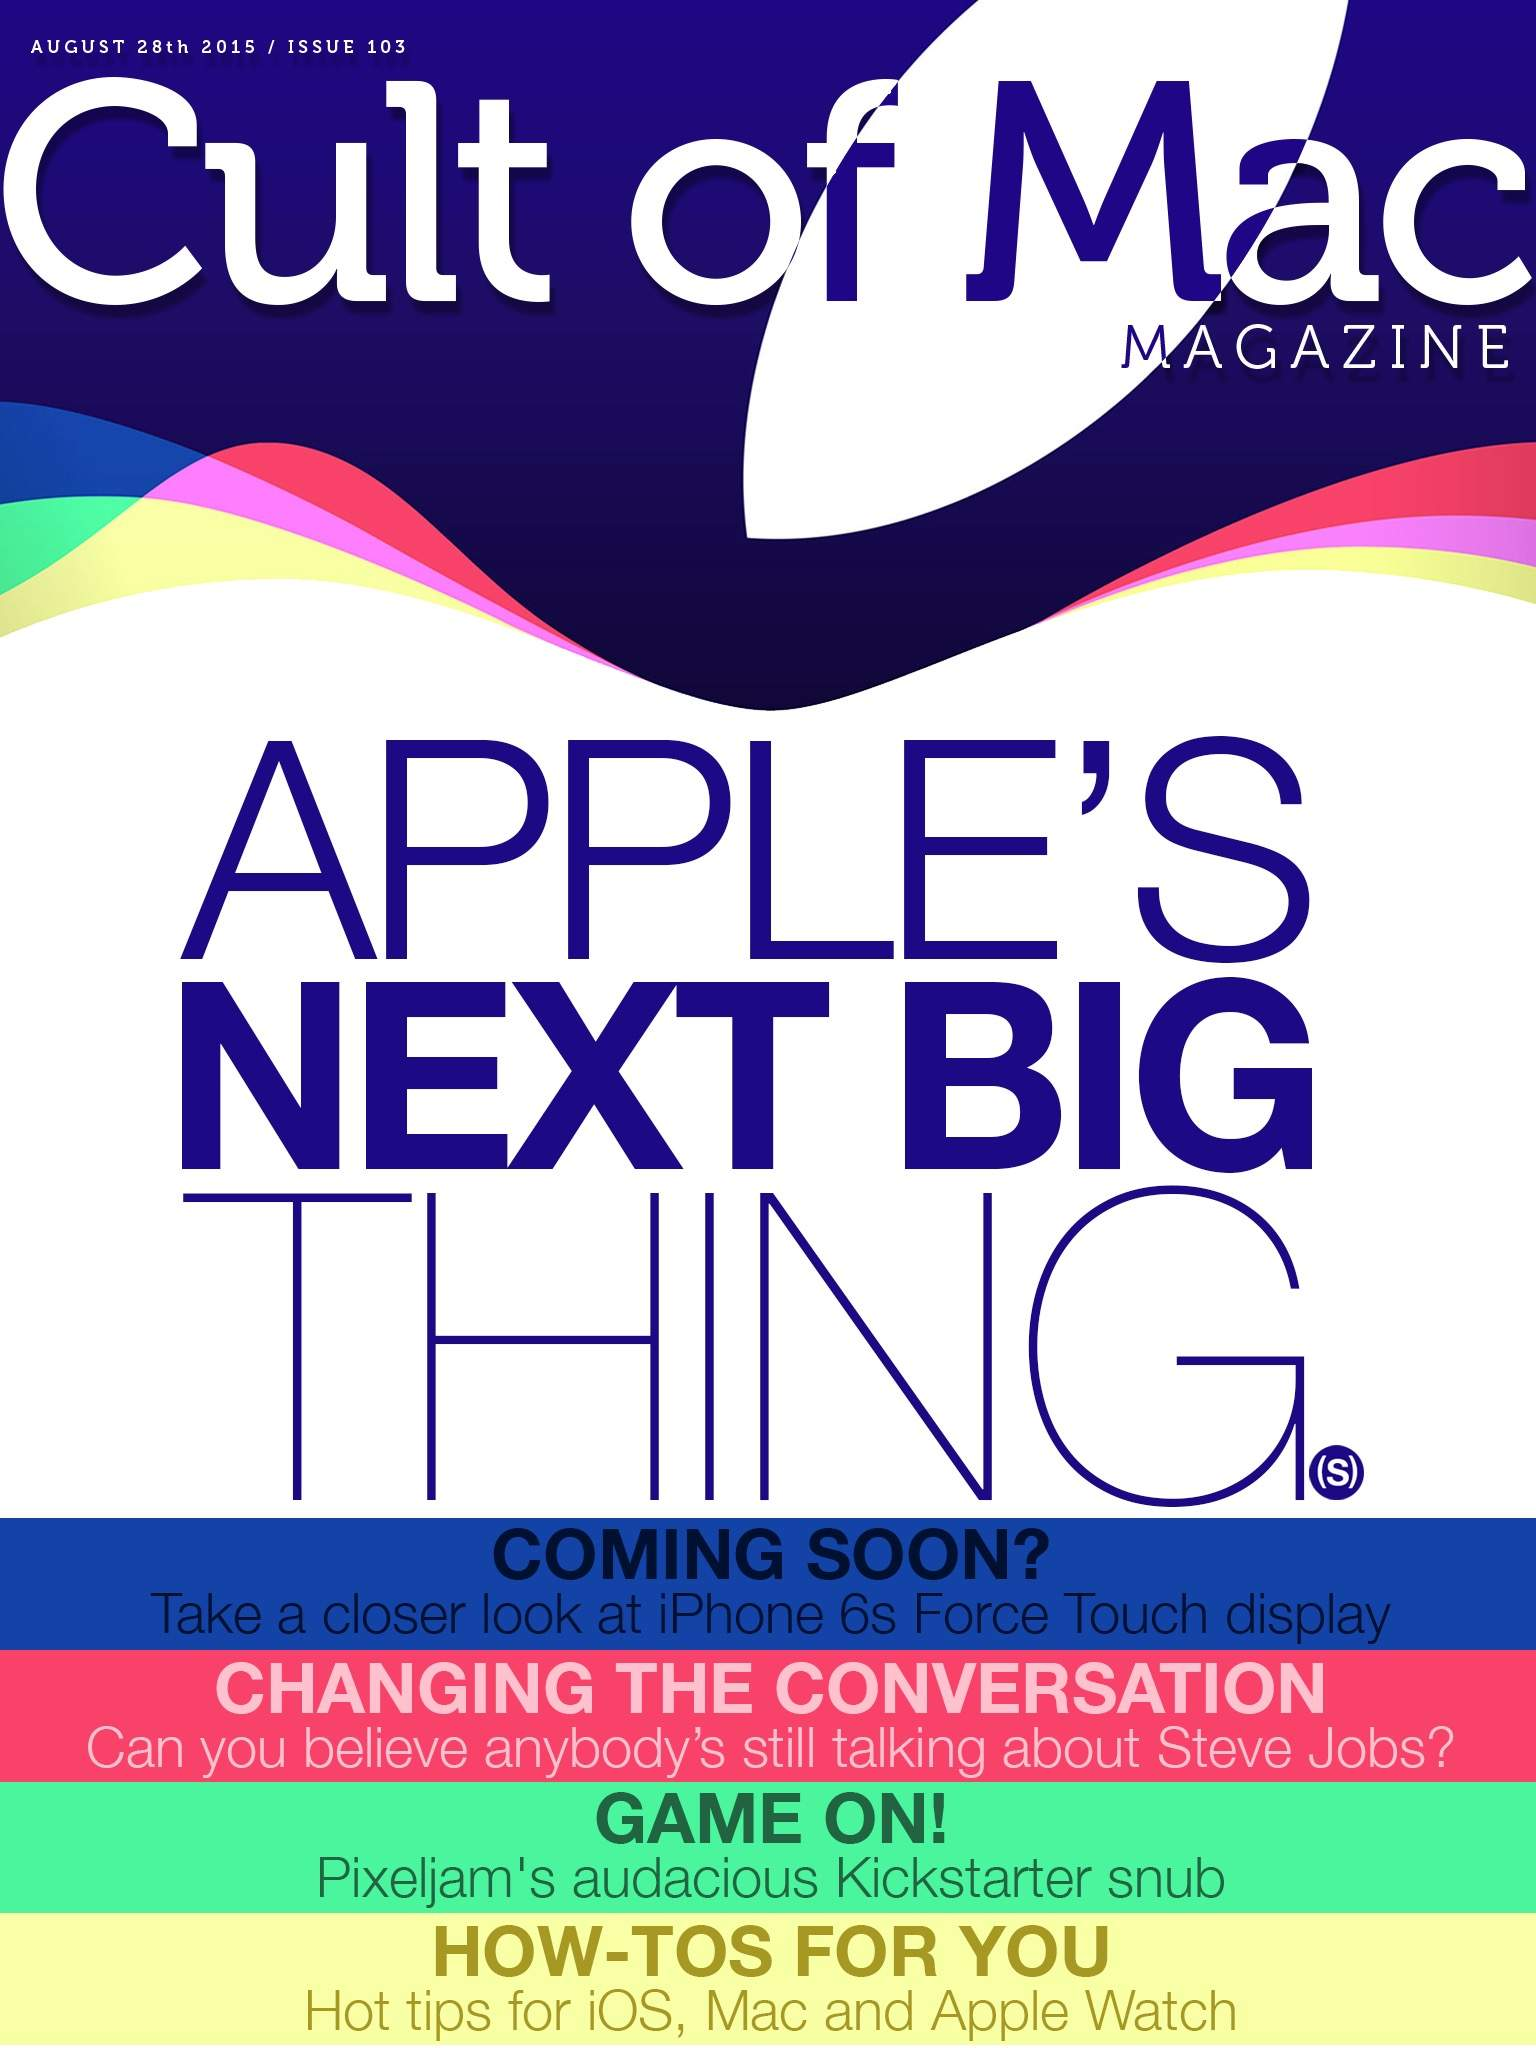 What's headed our way, Apple fans?